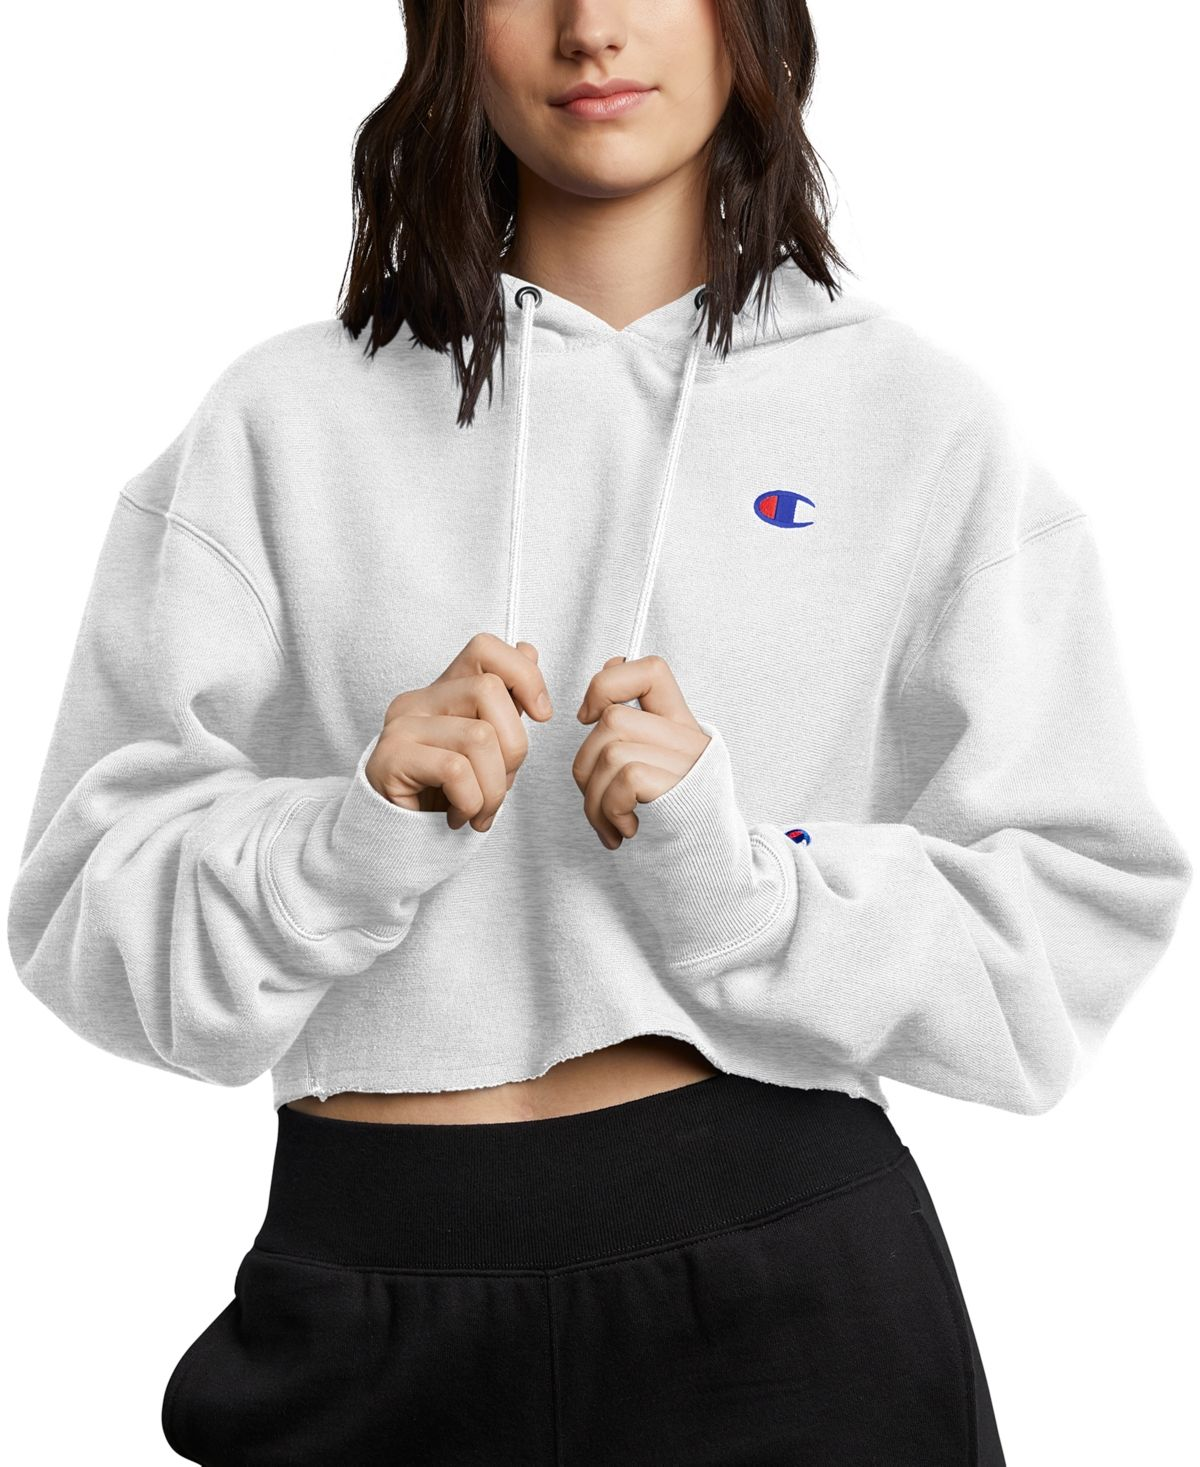 Champion Women S Reverse Weave Cropped Hoodie Gfs Silver Grey In 2021 Champion Clothing Cropped Hoodie Cropped Hooded Sweatshirt [ 1467 x 1200 Pixel ]